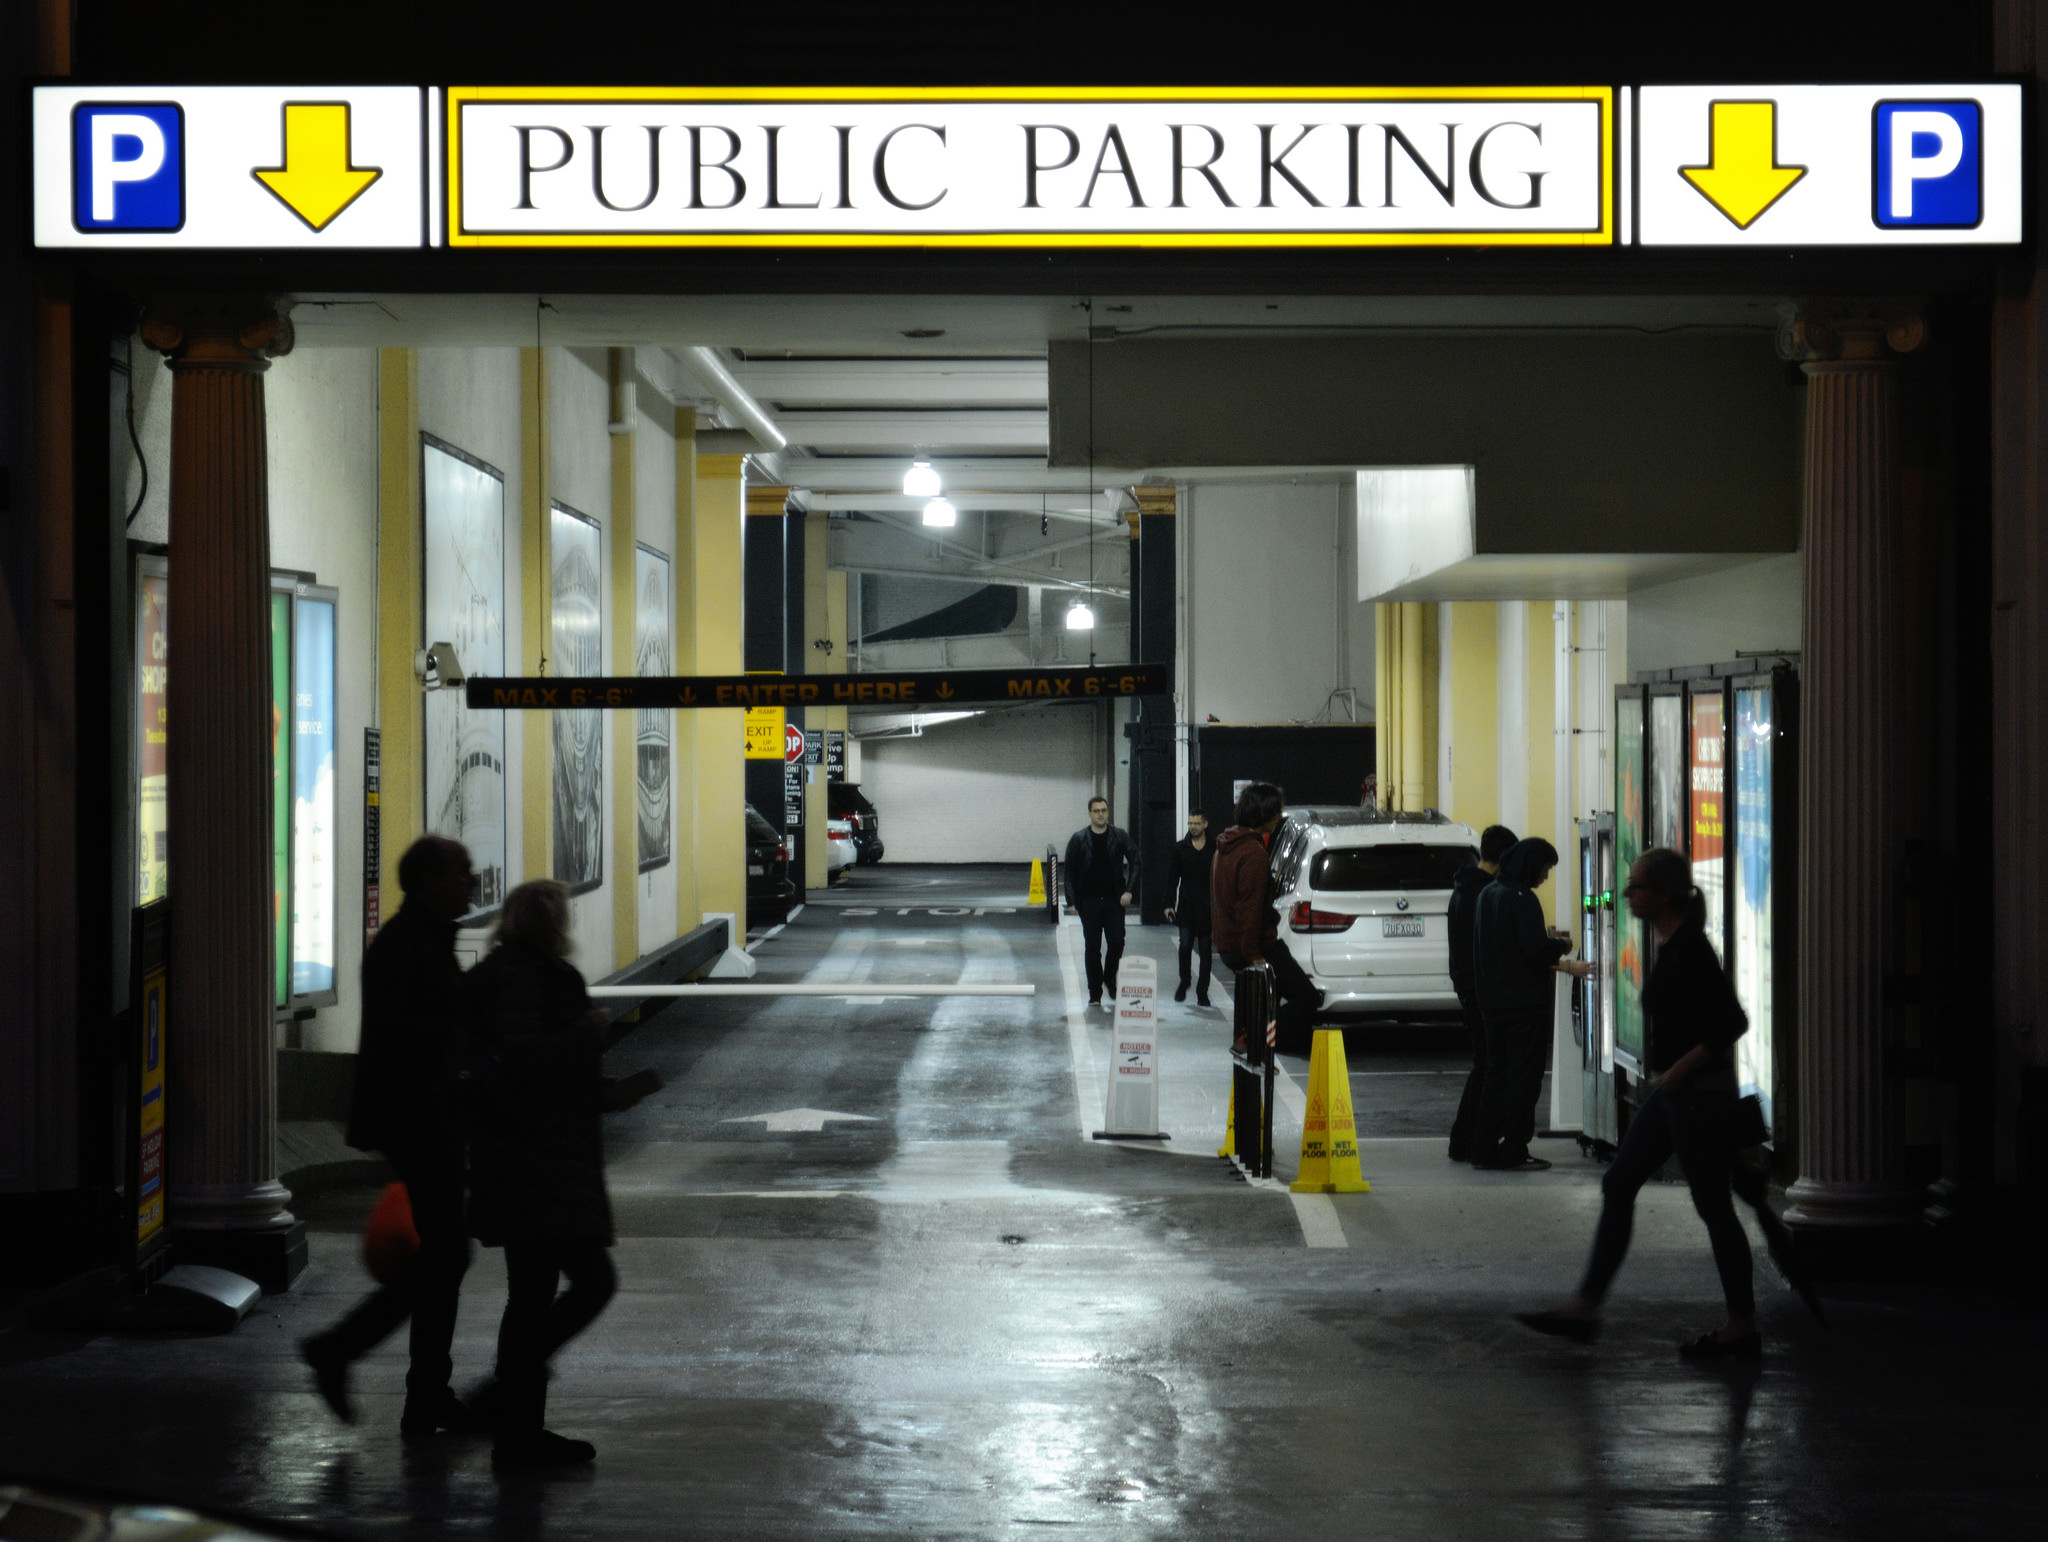 Demand-based parking to stretch citywide in 2018